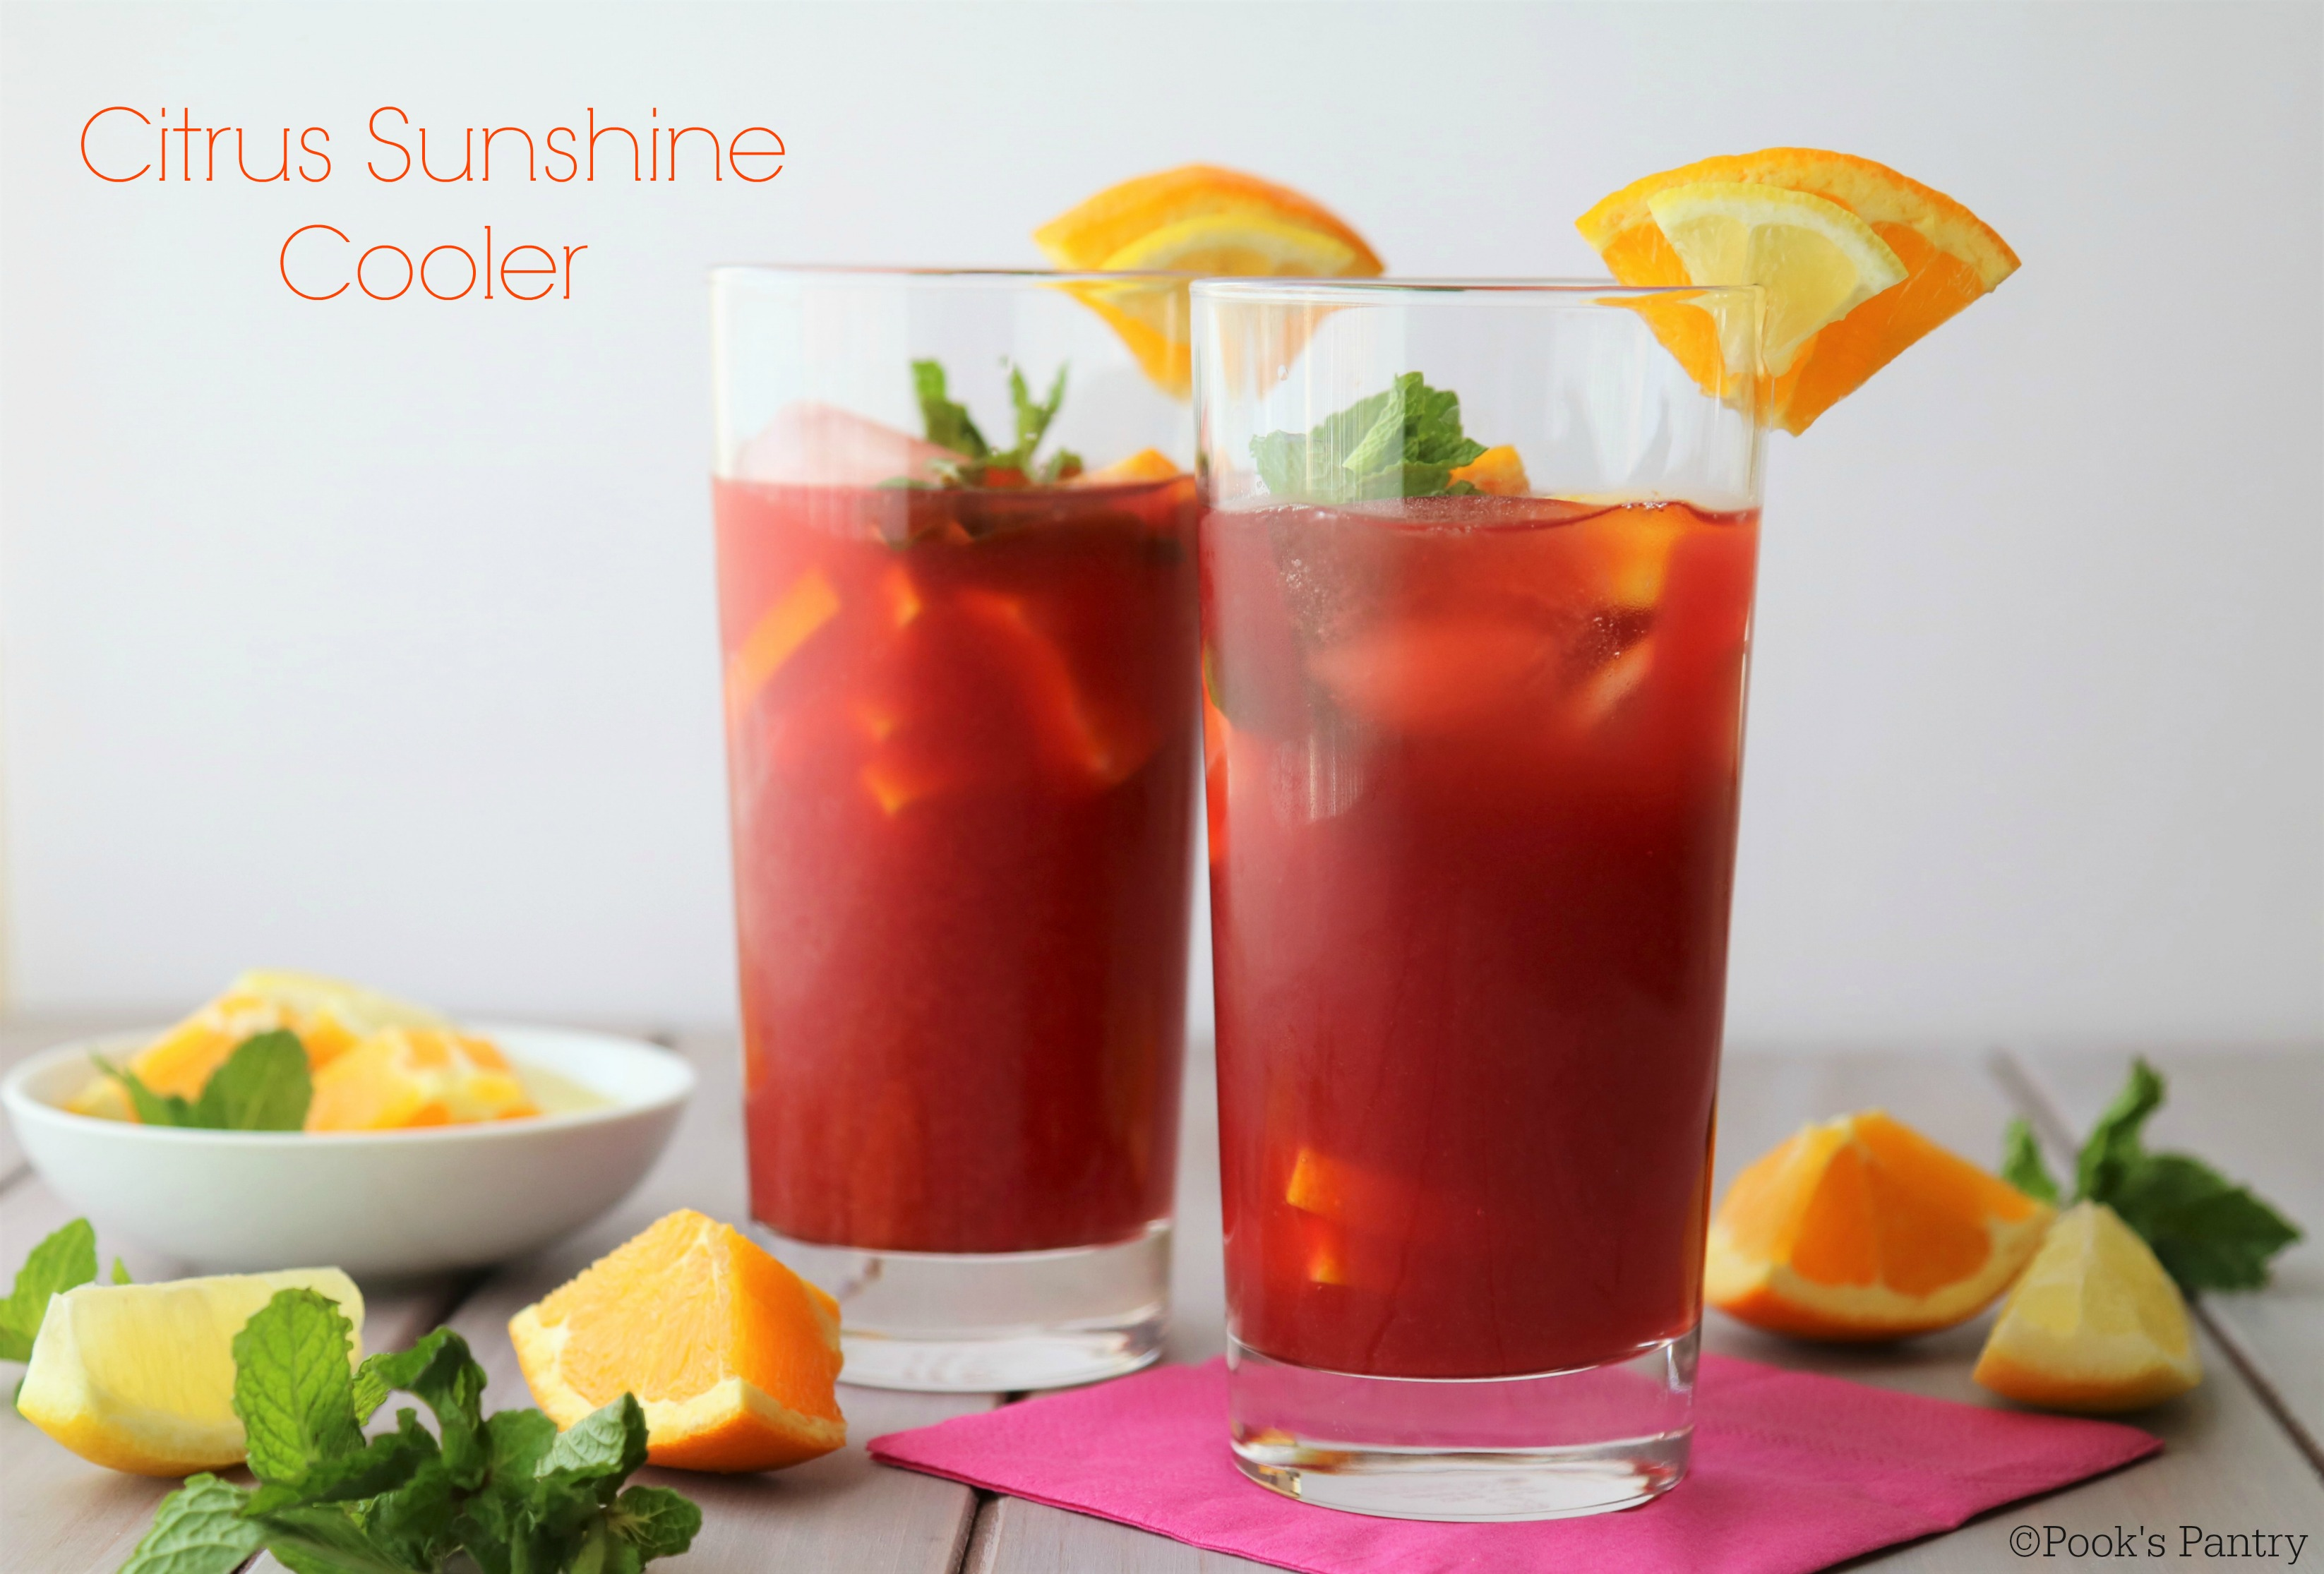 Citrus Sunshine Cooler - Pook's Pantry